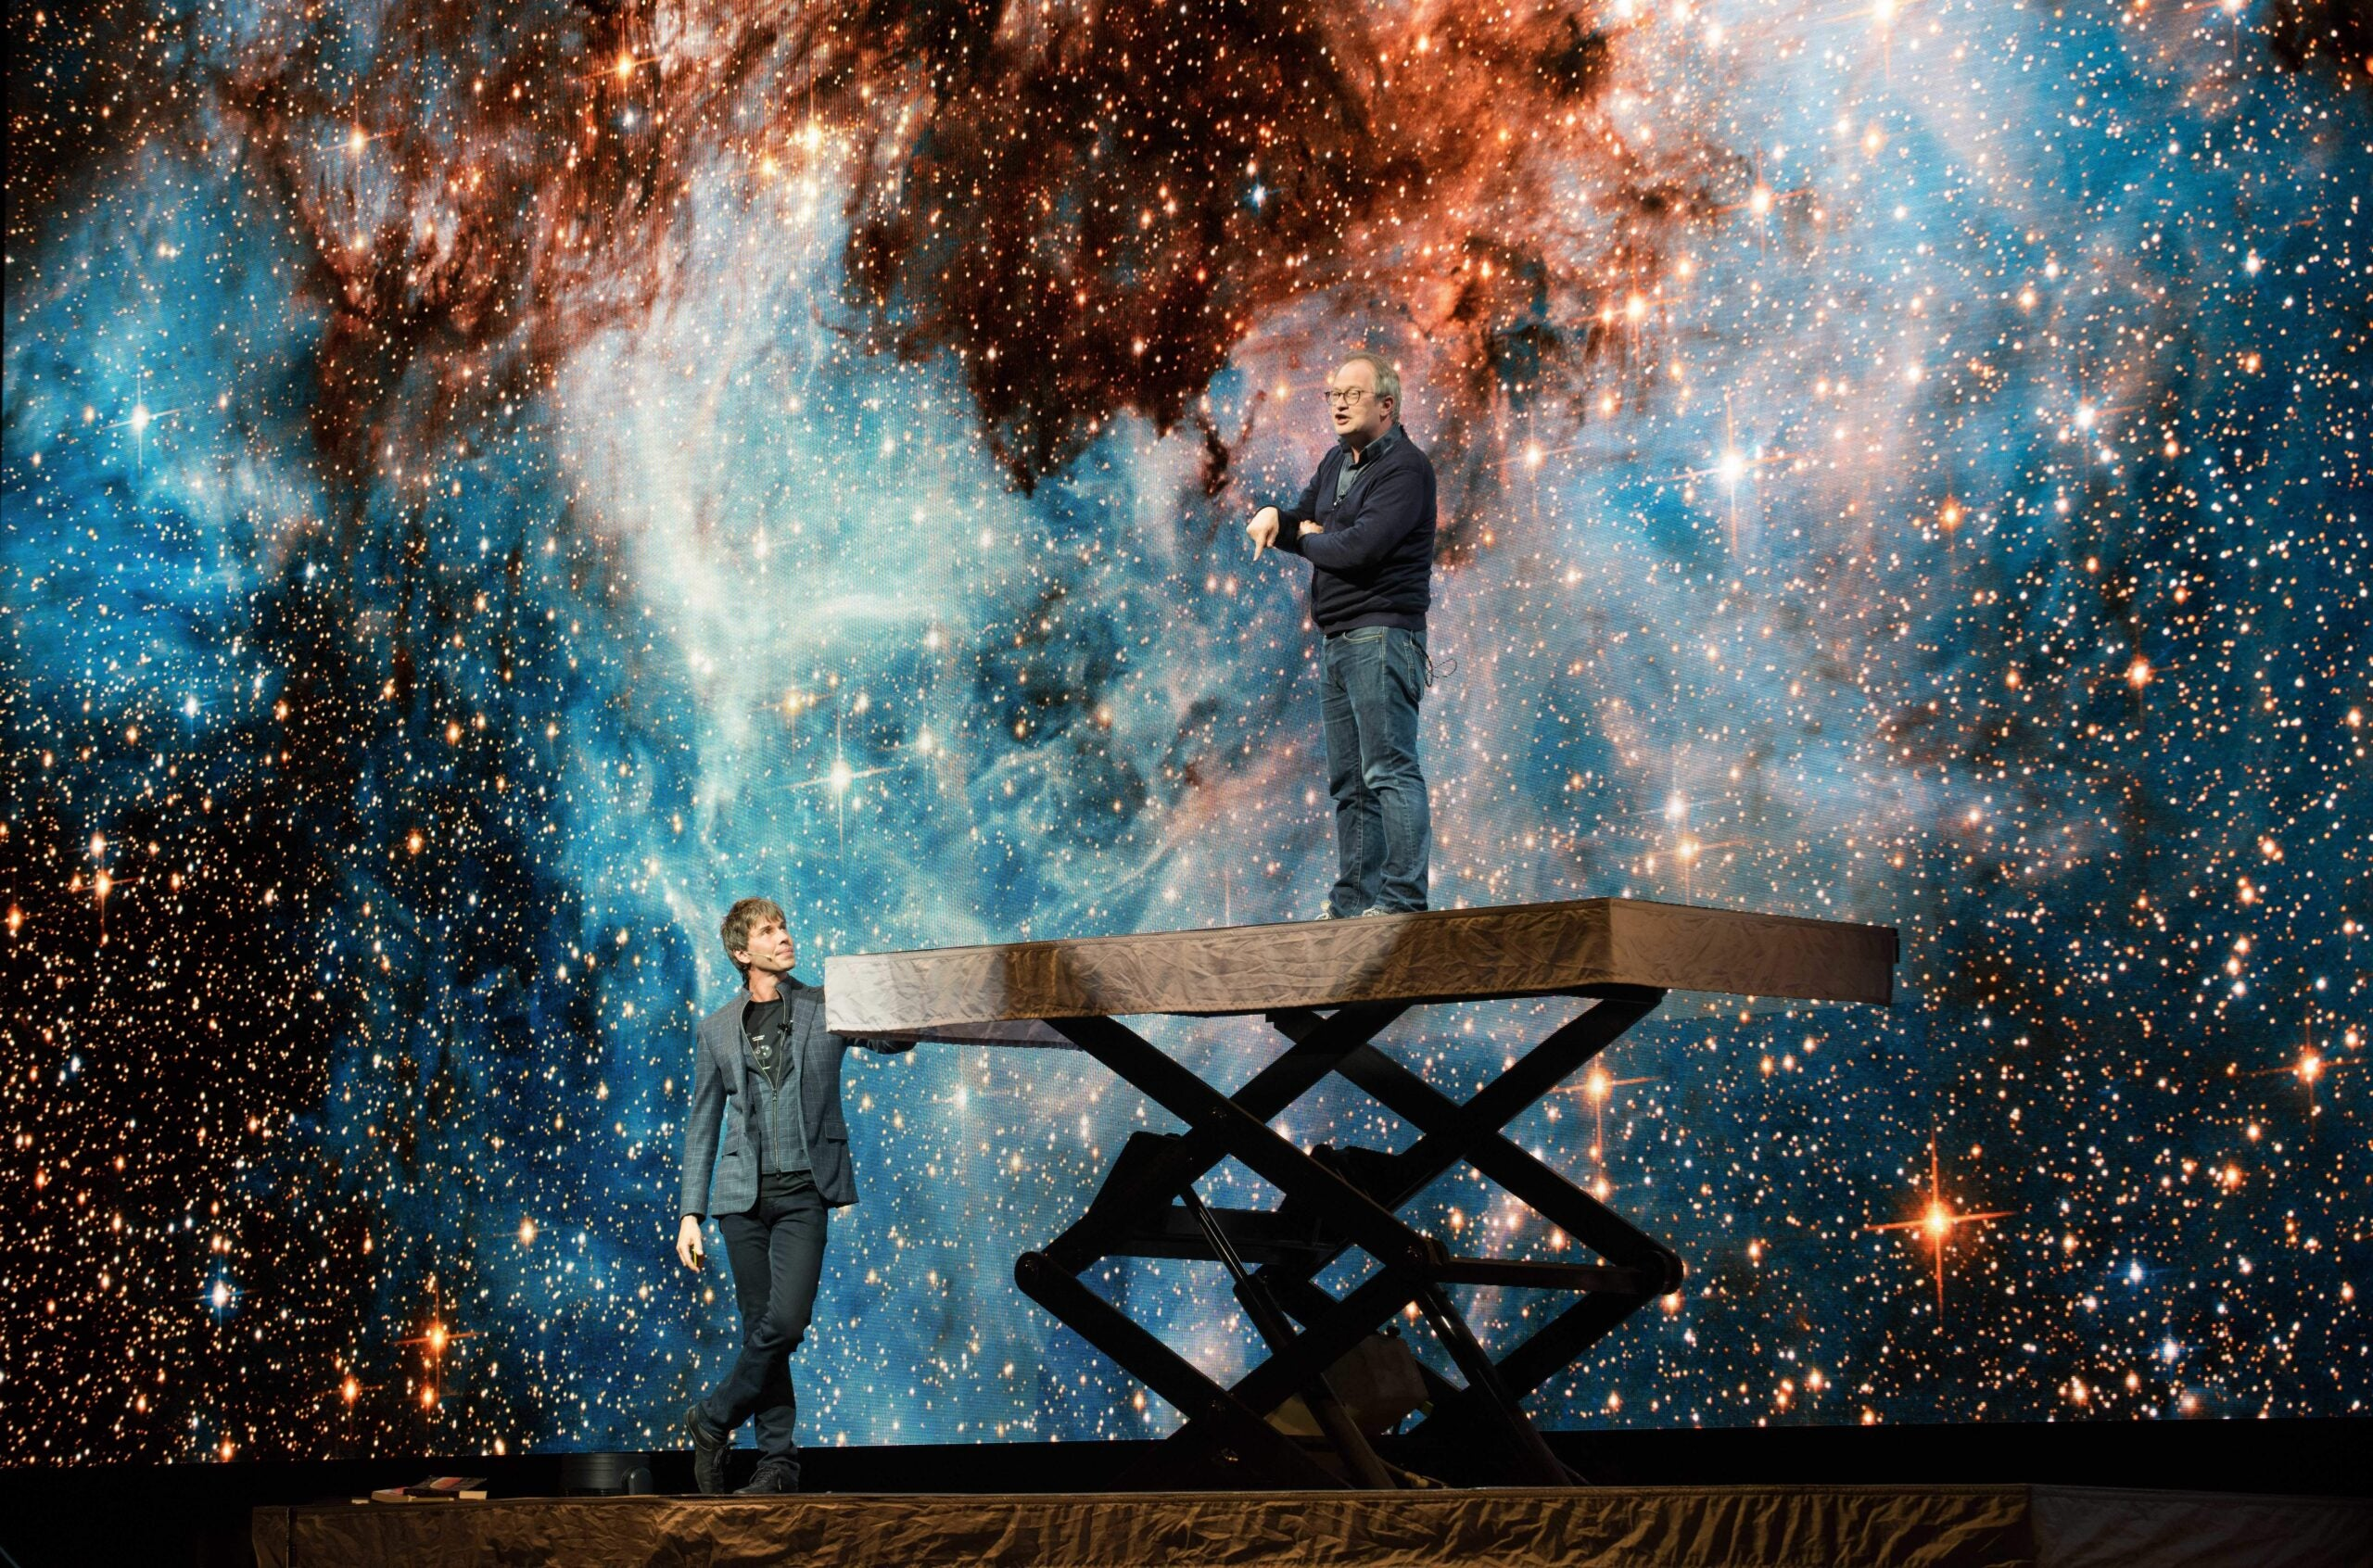 Robin Ince: Stephen Hawking made science relatable – why is it still so misunderstood?